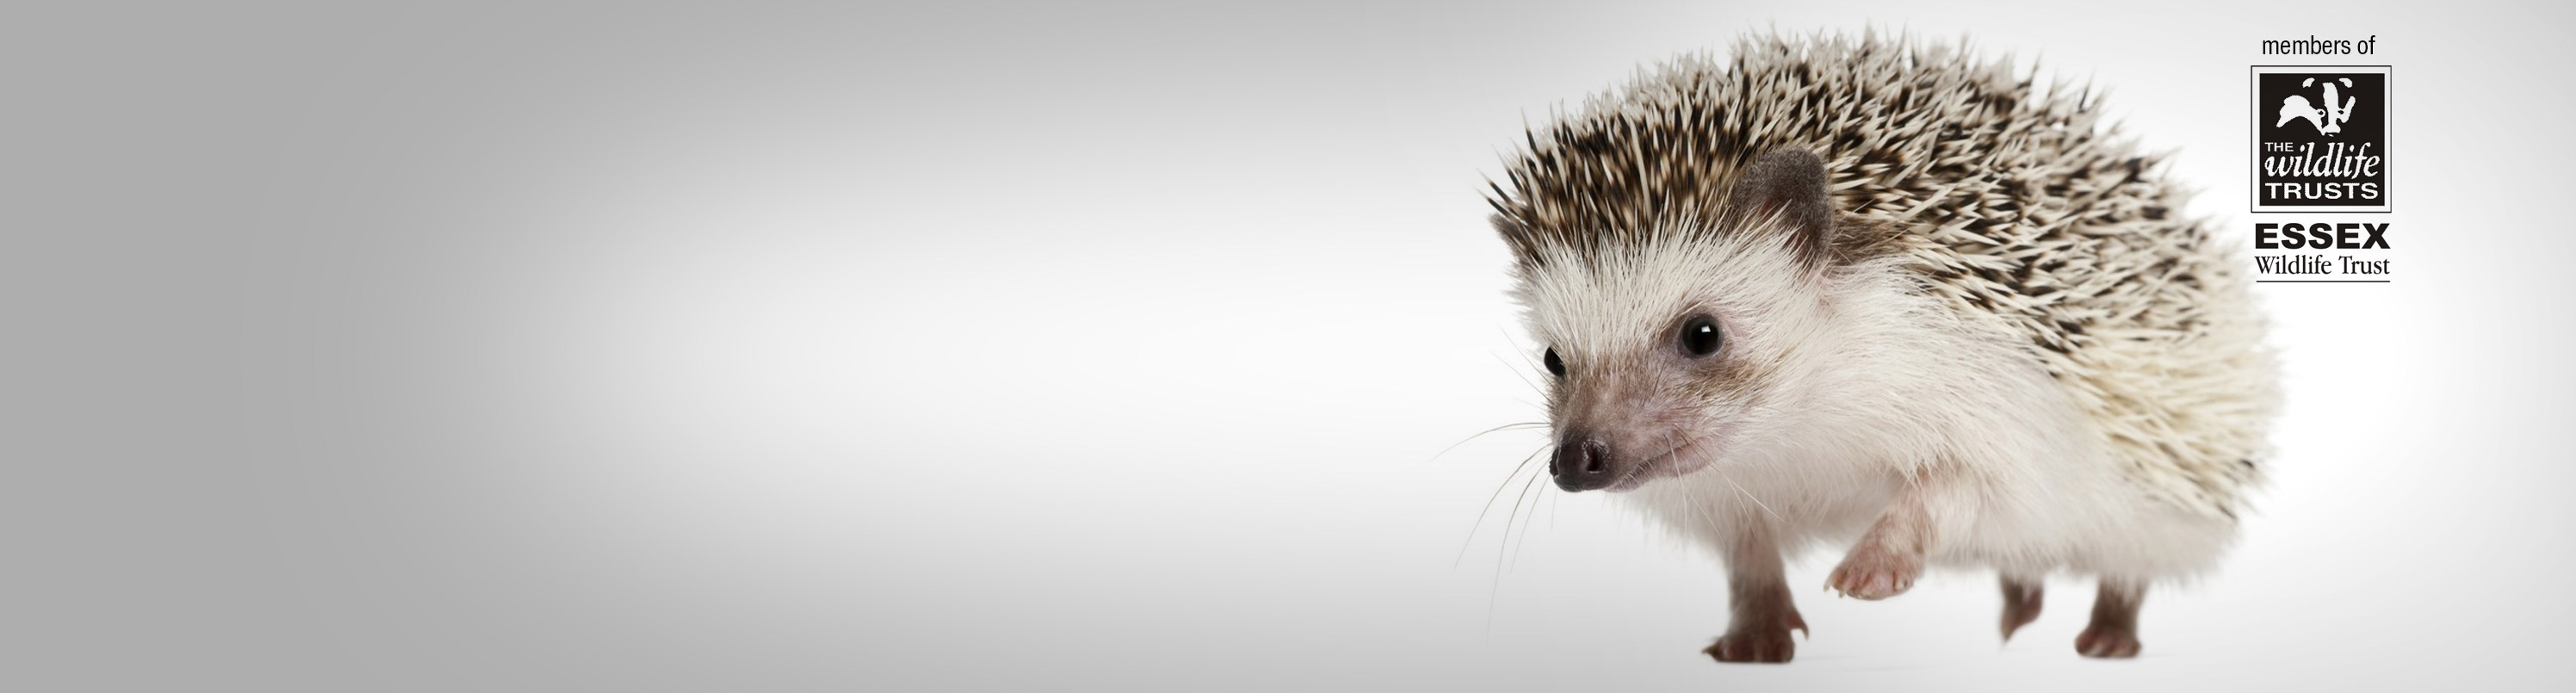 VISIT US AT HEDGEHOG HOUSE AND FIND OUT WHAT WE CAN DO FOR YOU AND YOUR BUSINESS